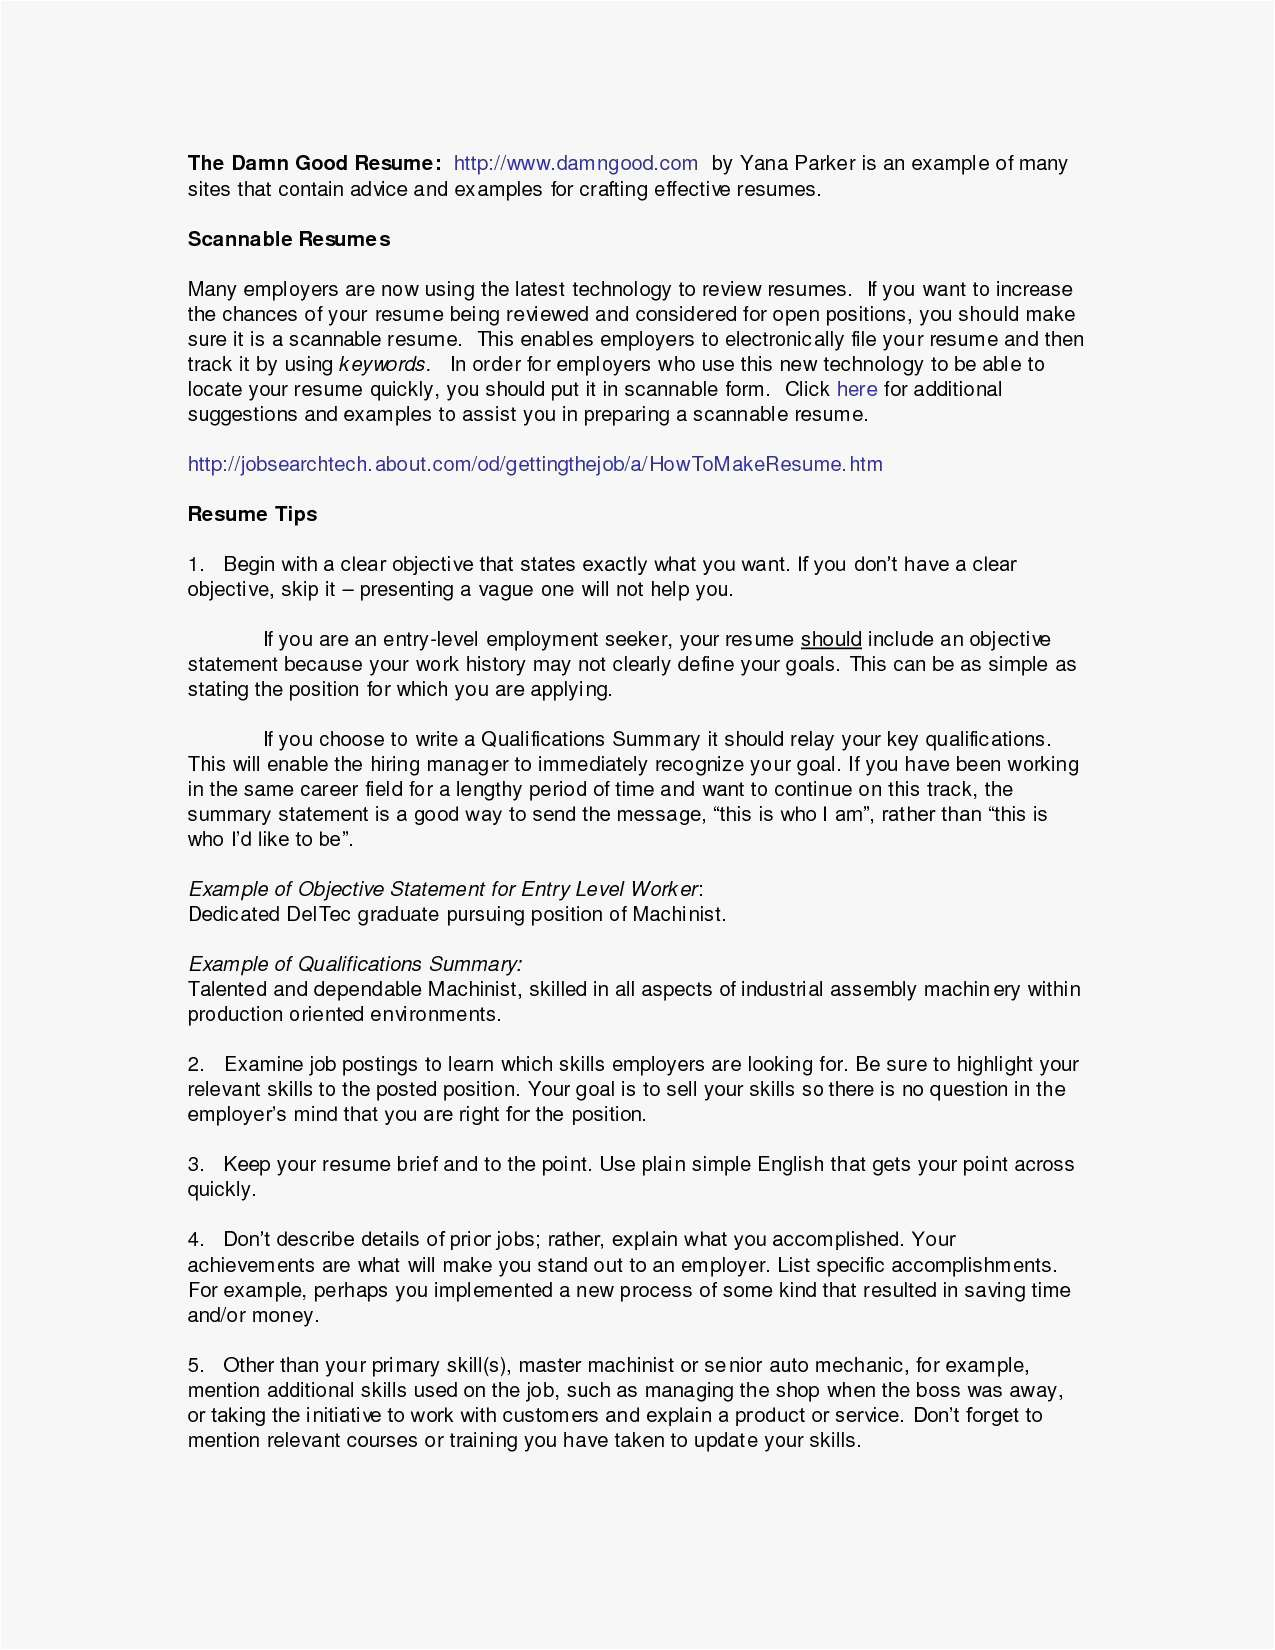 Business Analyst Resume Objective - Business Analyst Download Business Analyst Investment Banking Resume